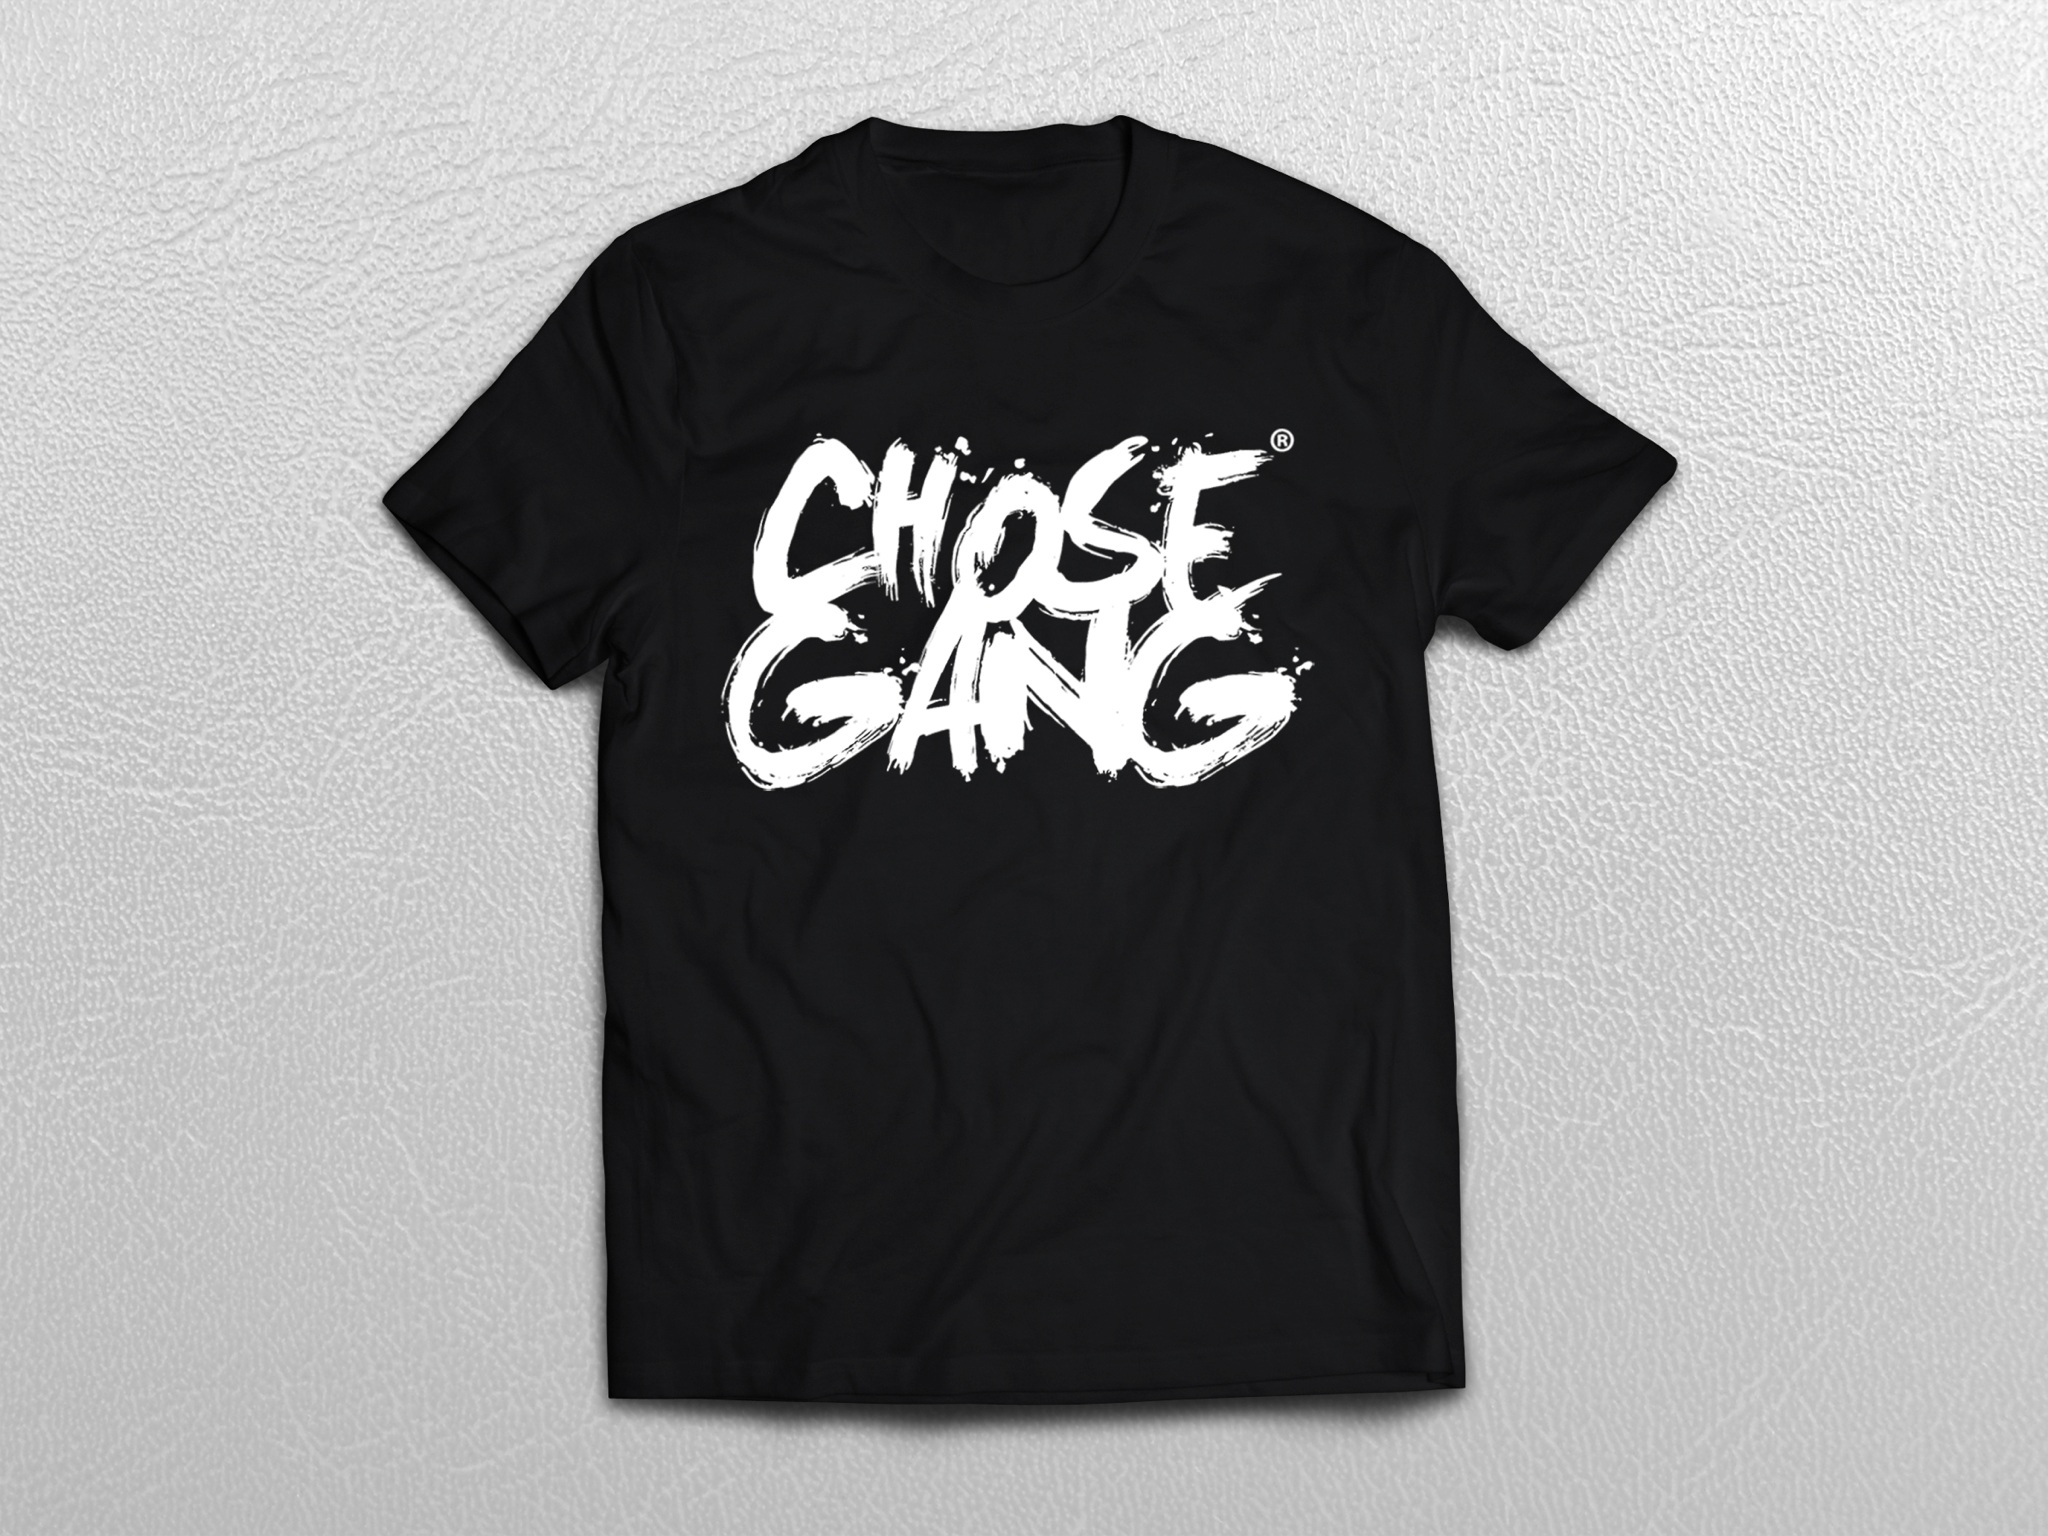 Chose Gang Tee Shirt